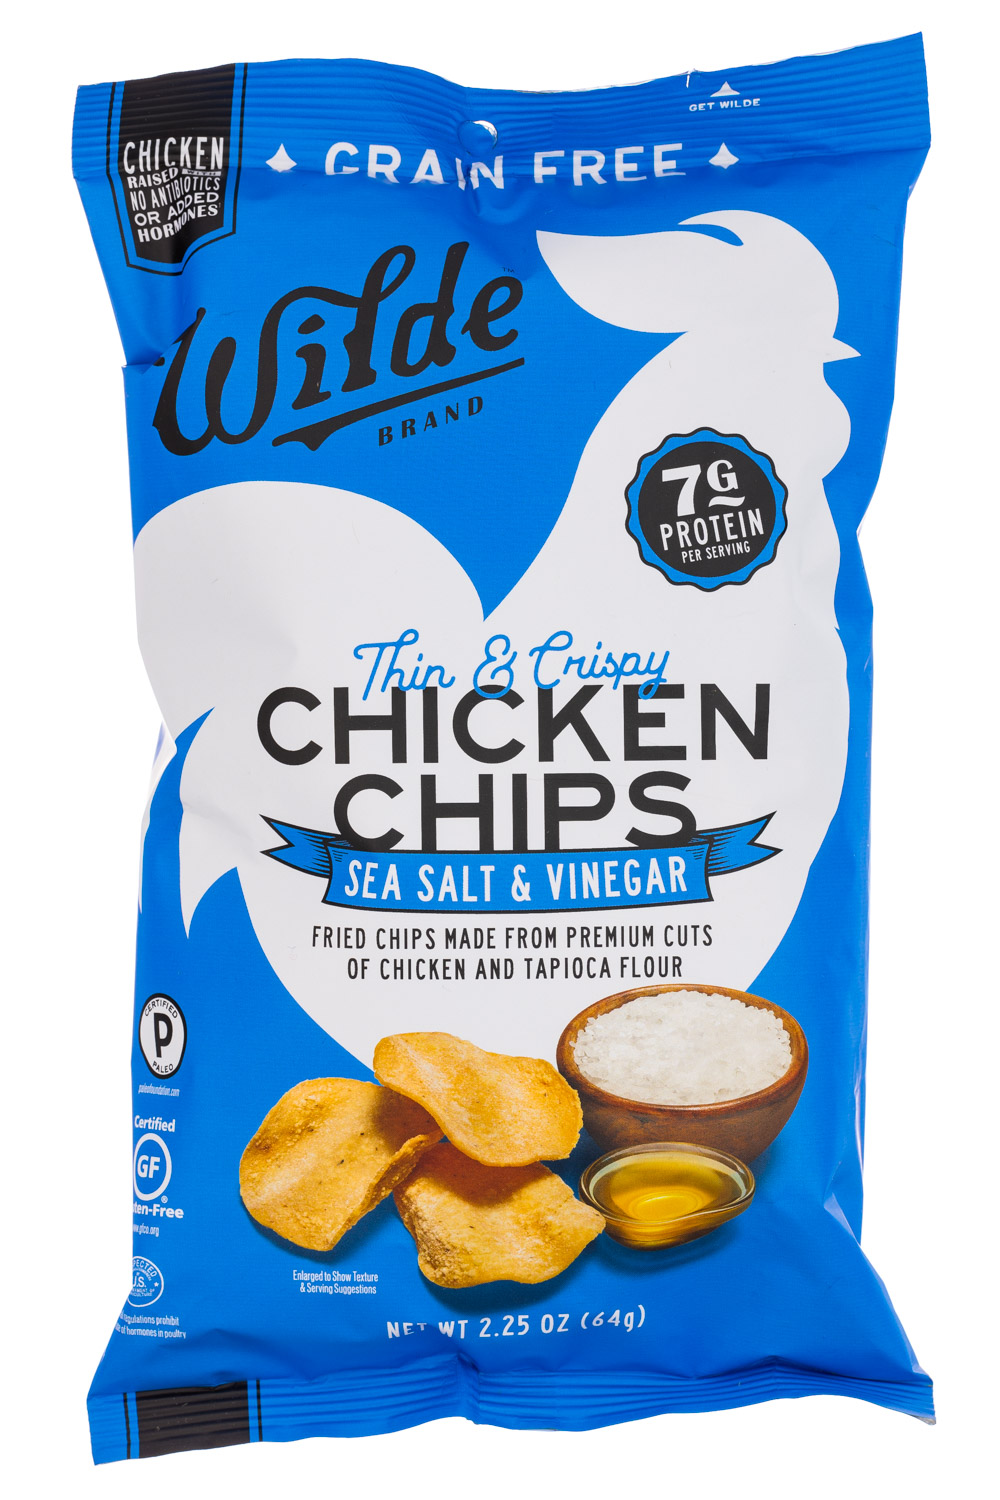 Sea Salt & Vinegar Chicken Chips